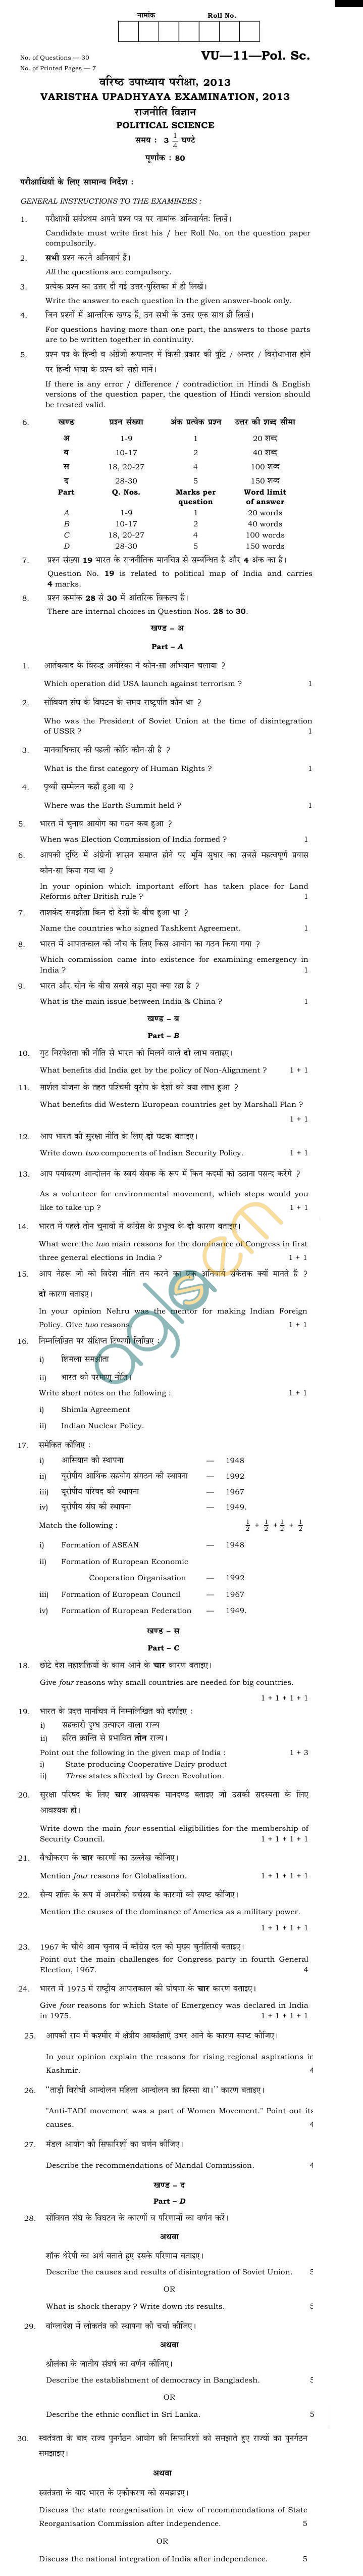 Rajasthan Board V Upadhyay Pol Science Question Paper 2013